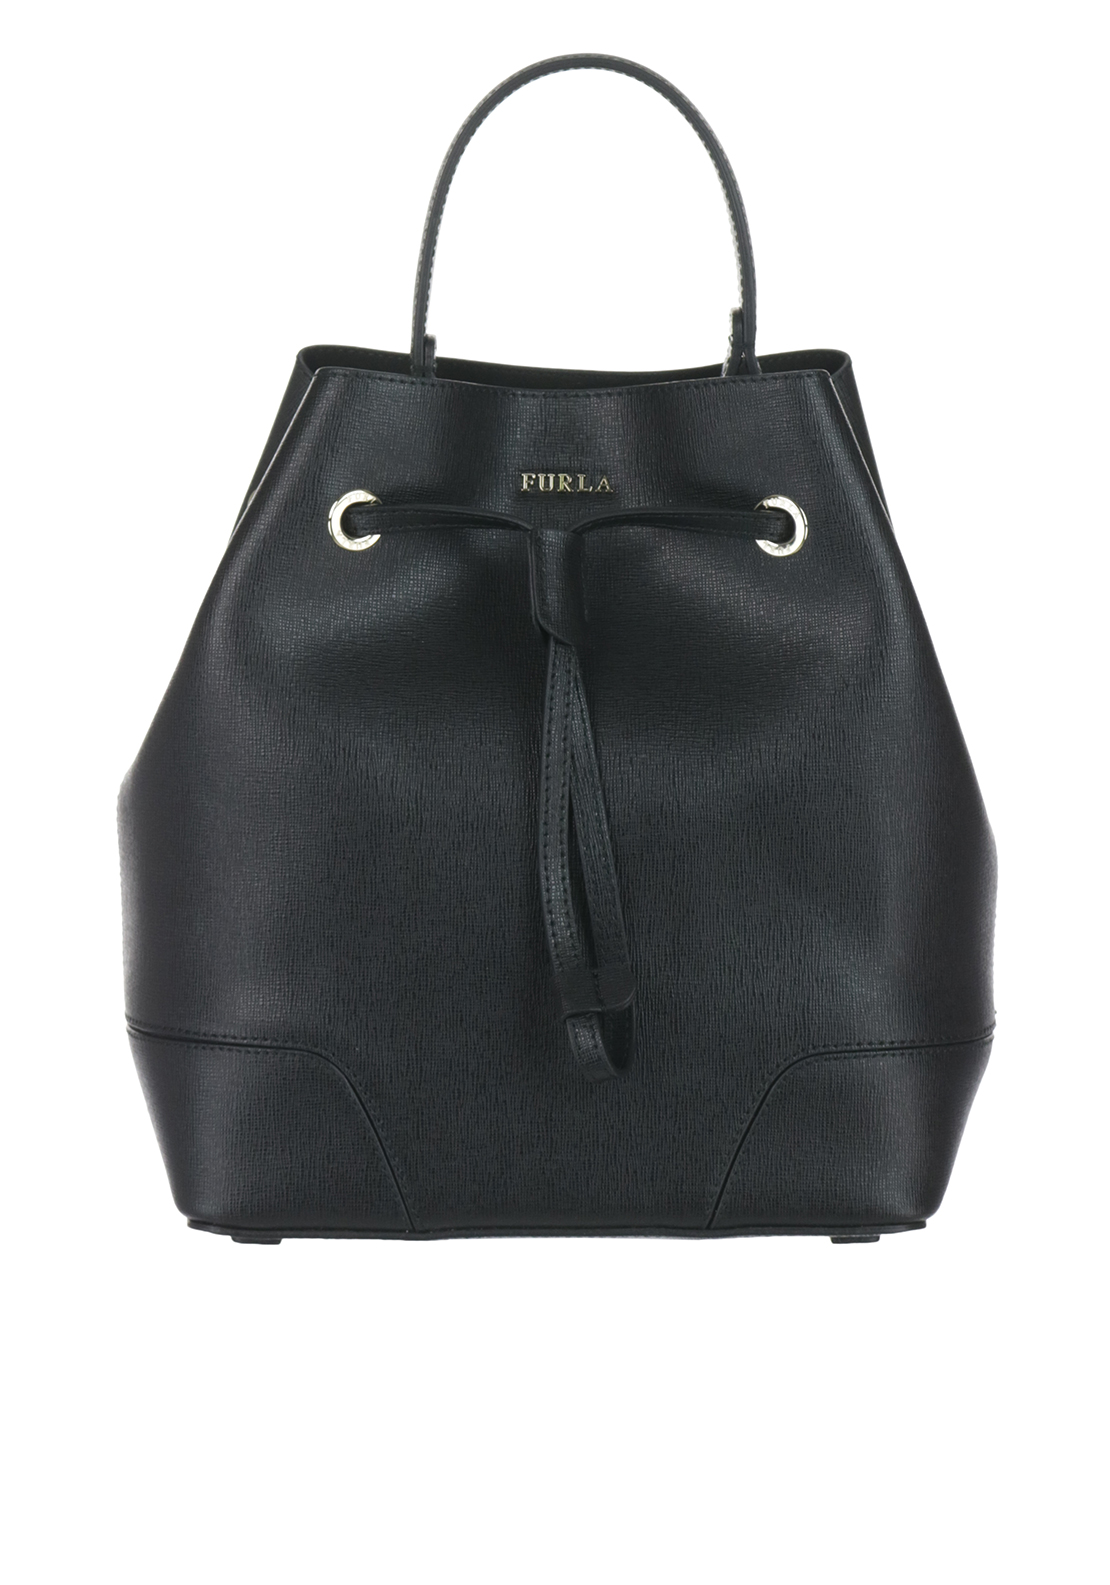 Furla Piper Bucket Bag Small, Black